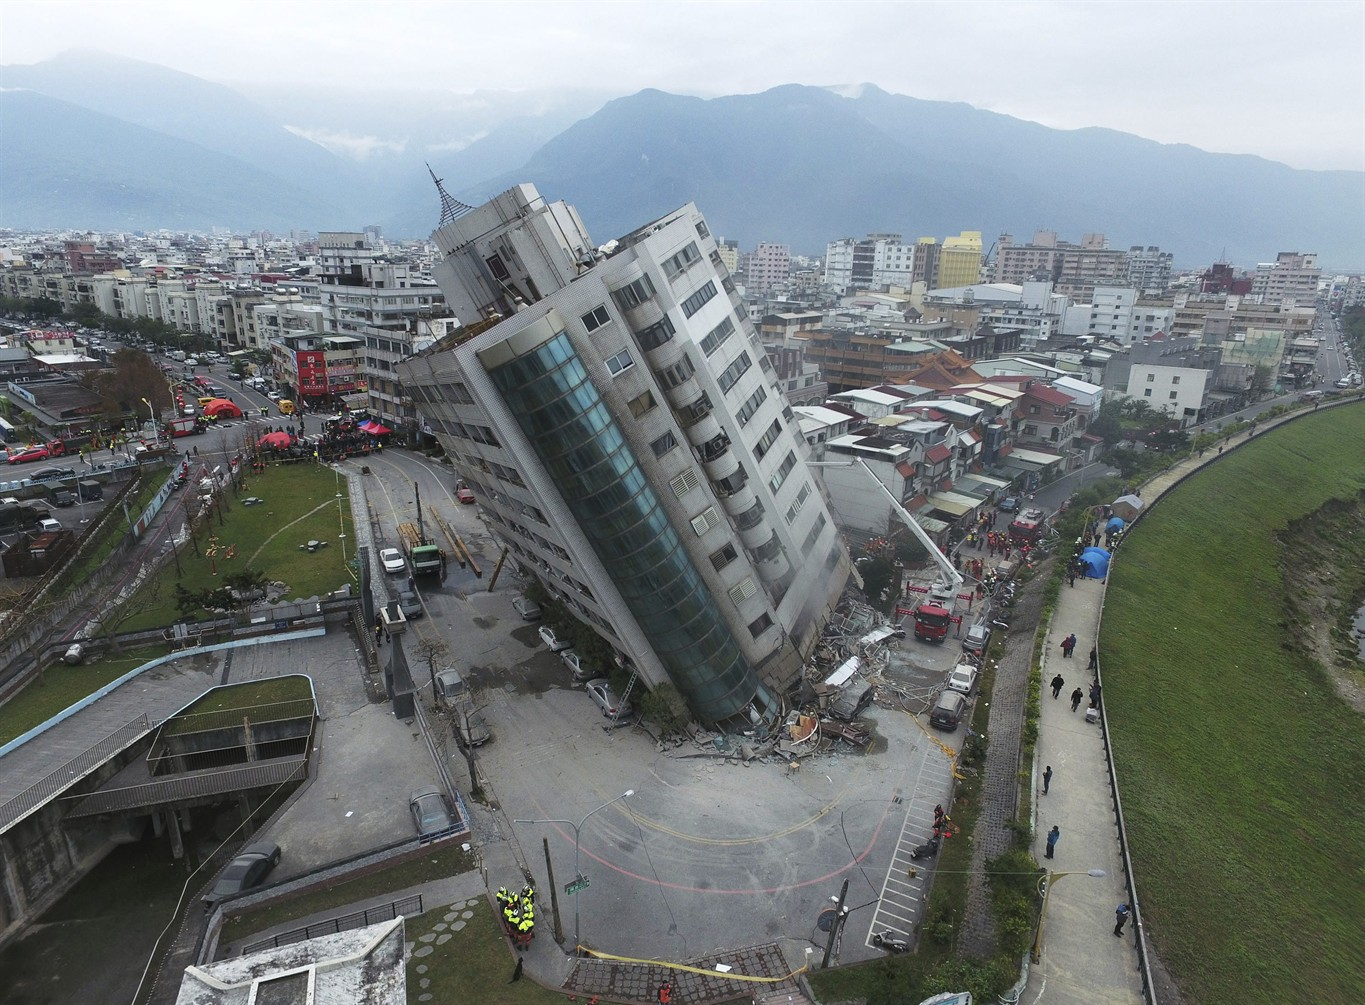 Japan towns hit by 2011 quake launch fundraising for Taiwan